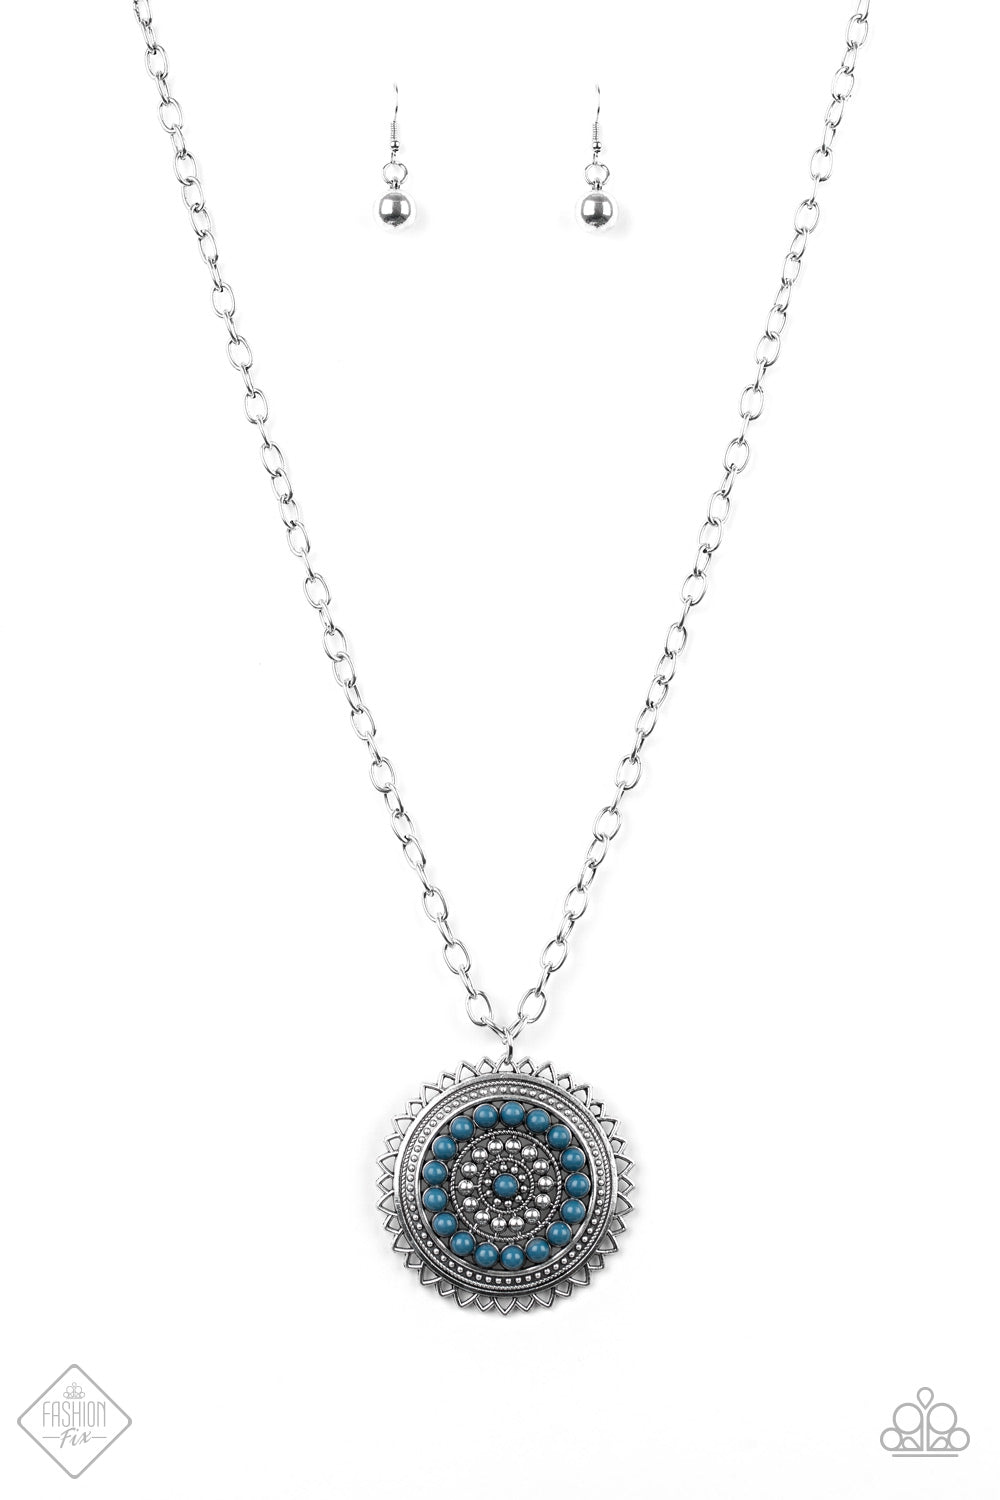 Lost SOL - Sunburst Pendant Necklace - The Paparazzi Fox